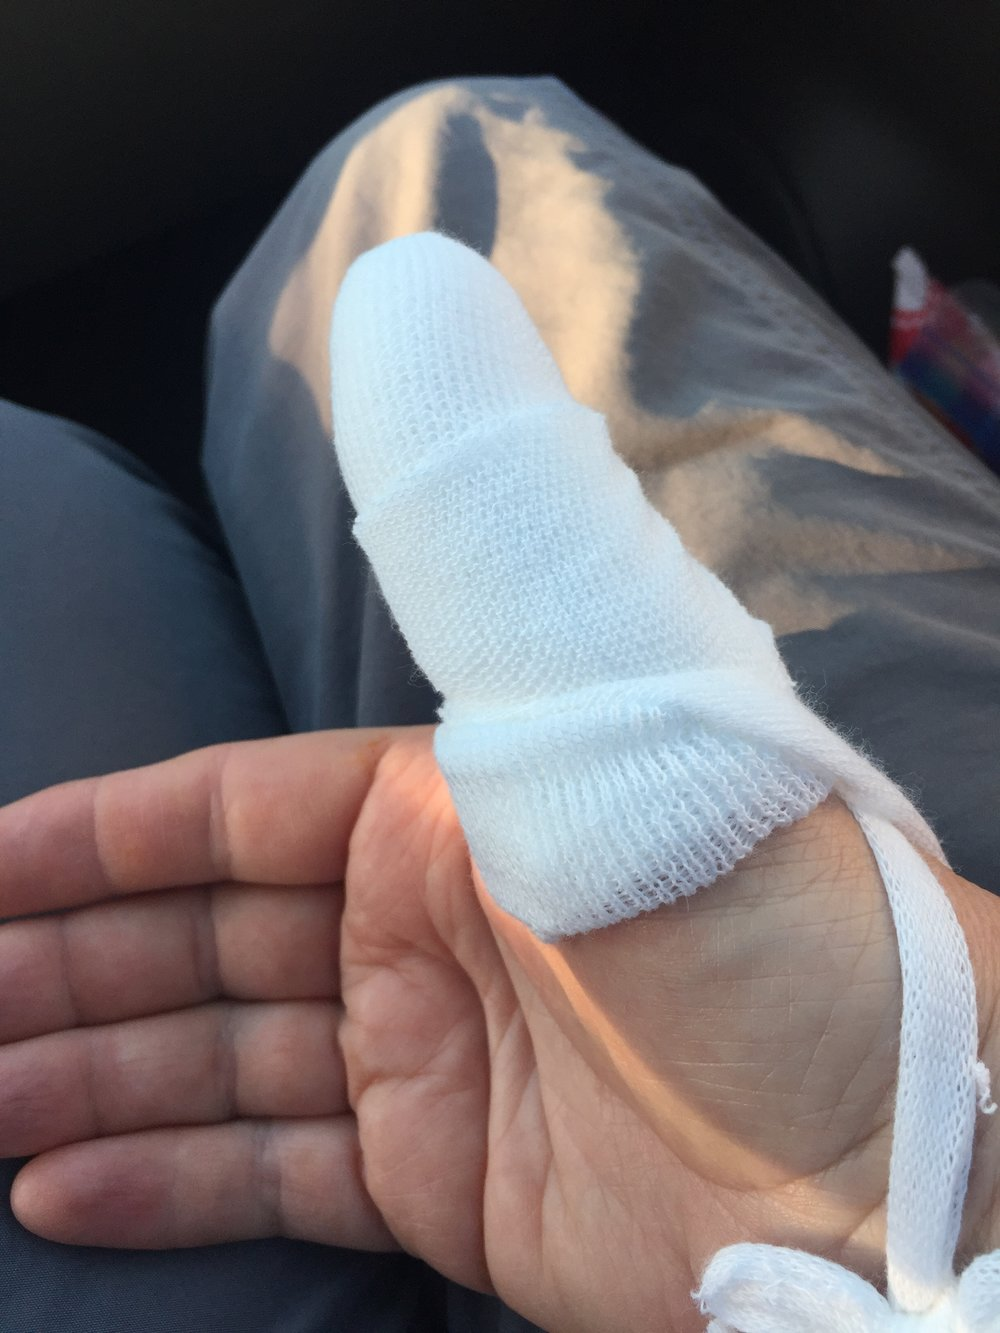 thumb - after